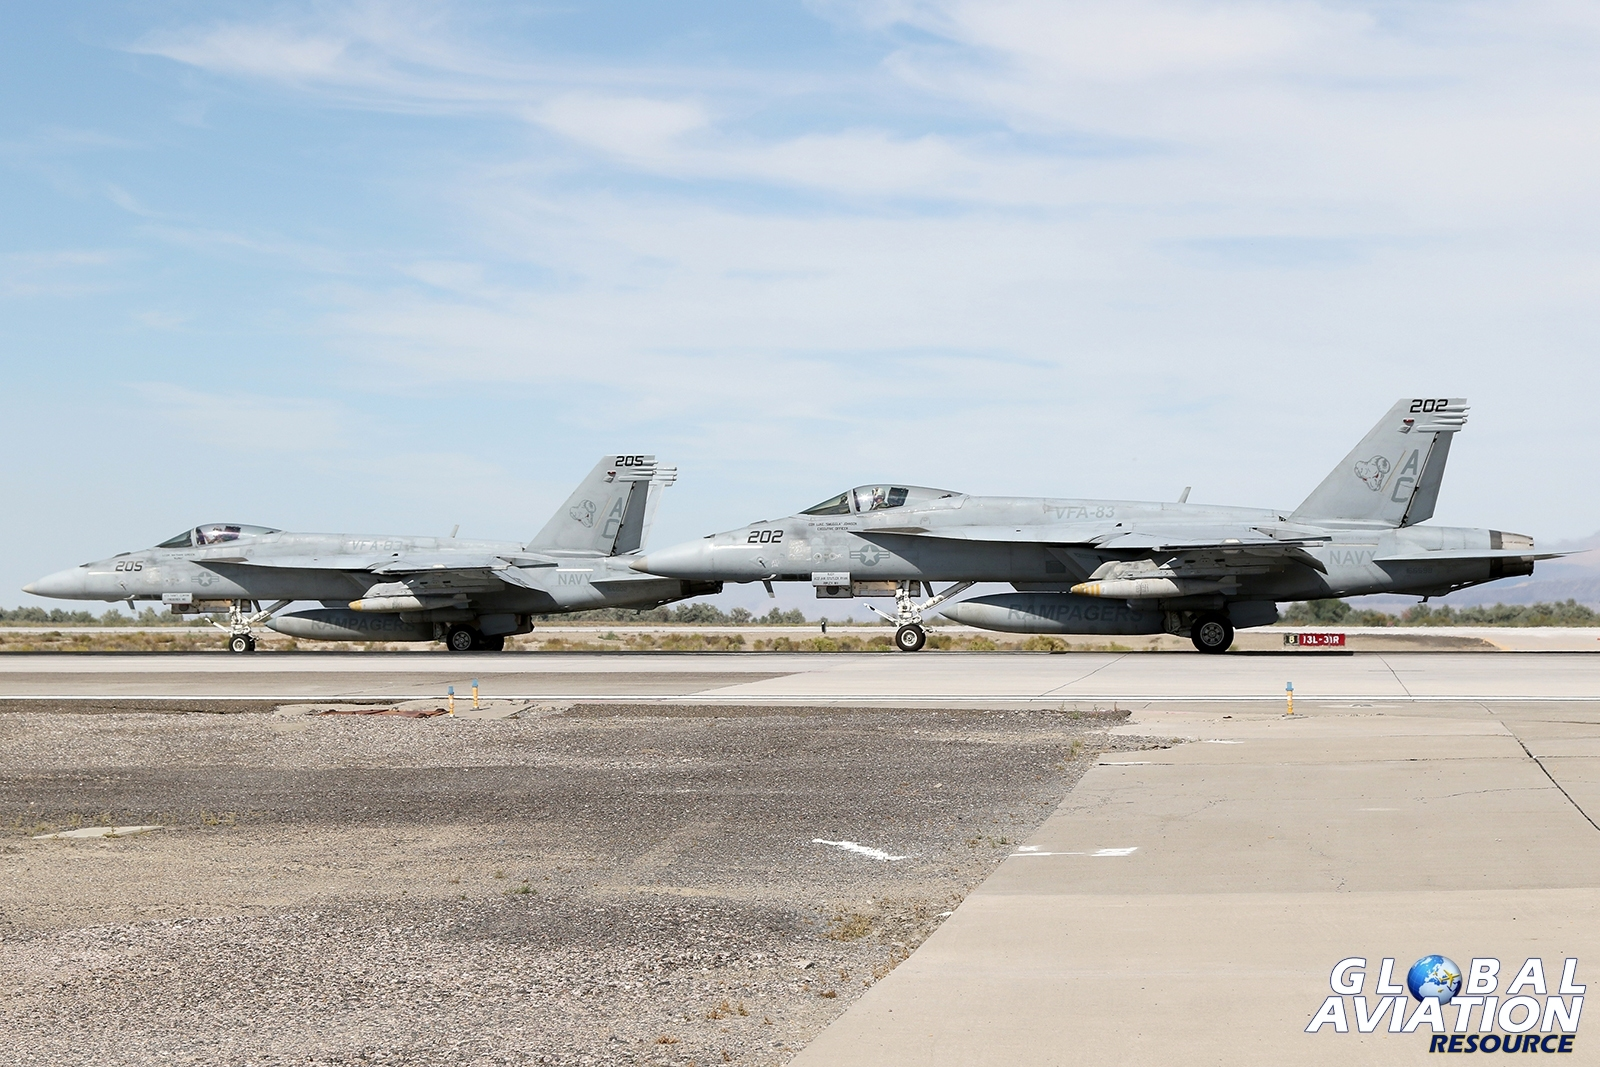 A pair of F/A-18E Super Hornets from VFA-83 on the runway at Fallon © Paul Dunn - Global Aviation Resource